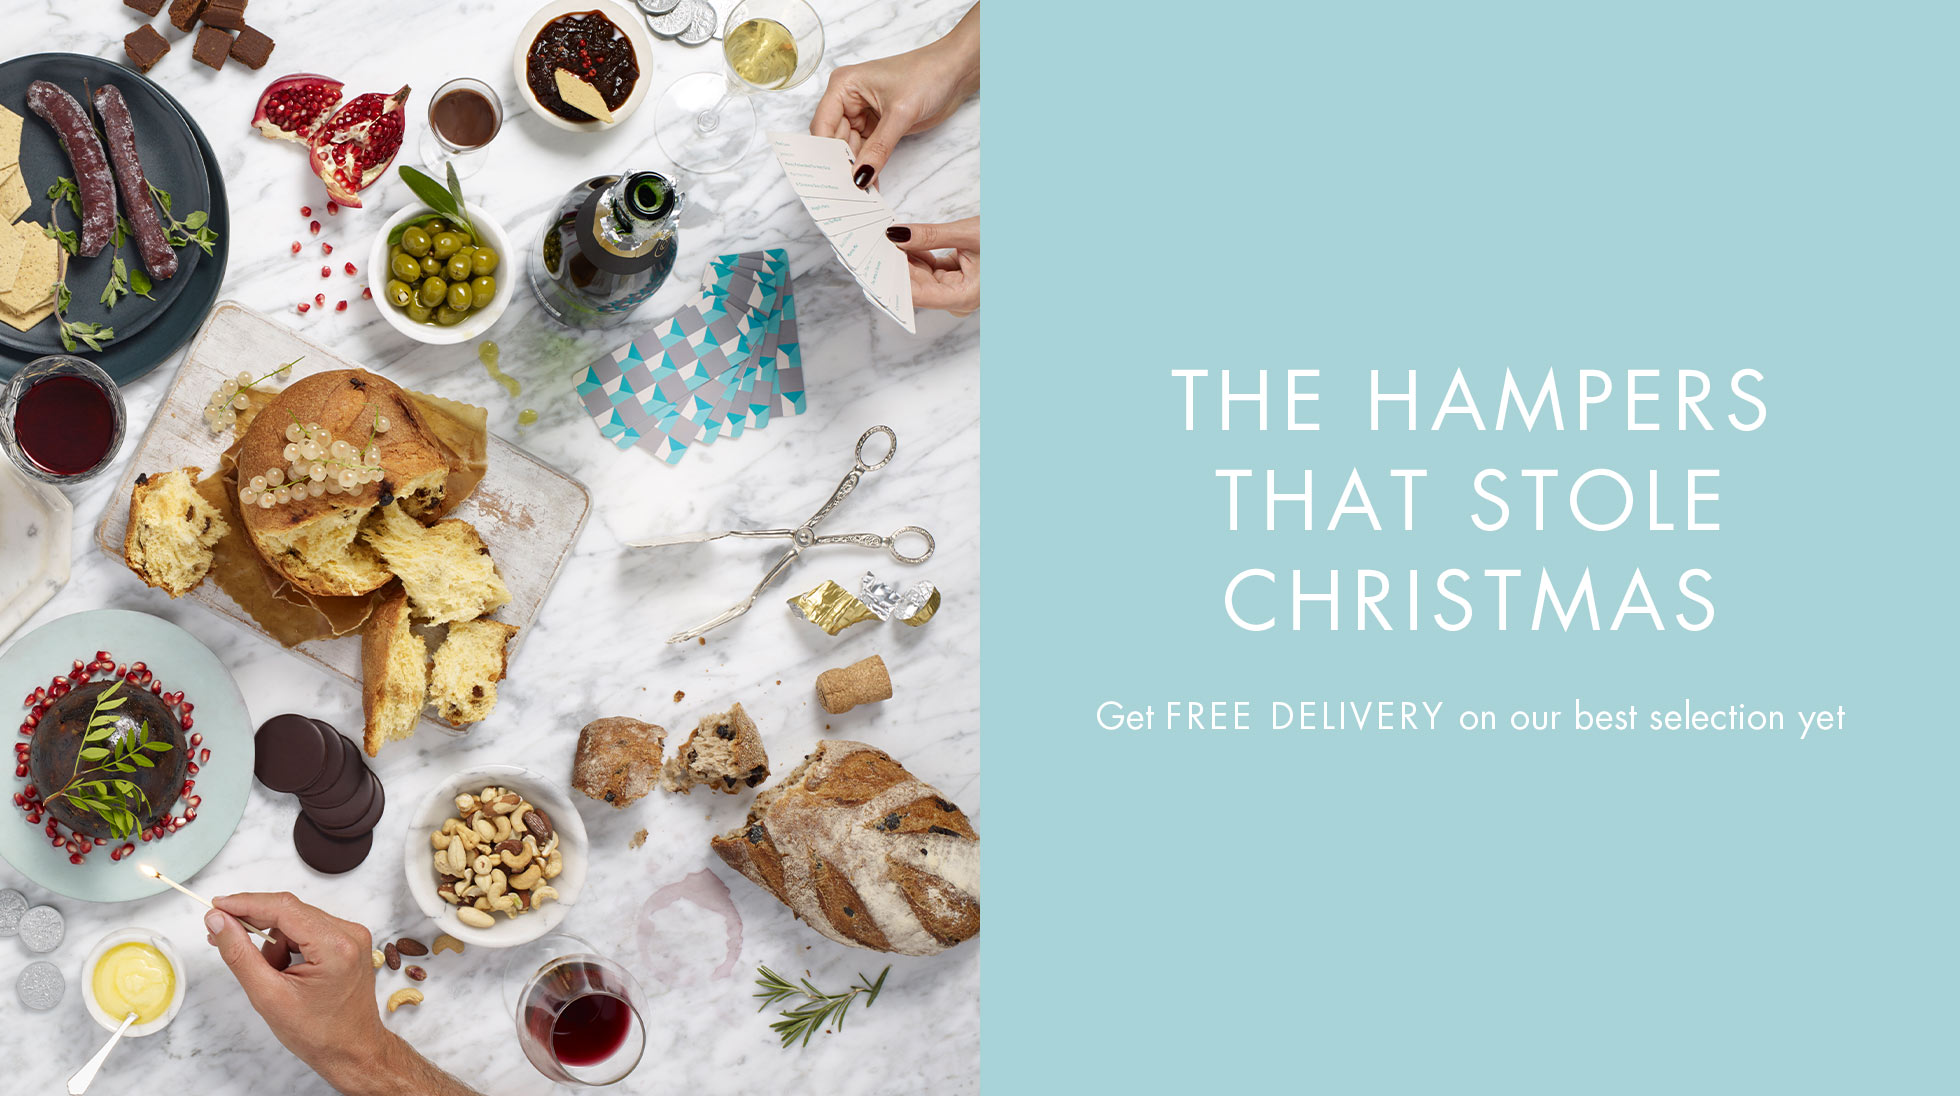 THE HAMPERS THAT STOLE CHRISTMAS